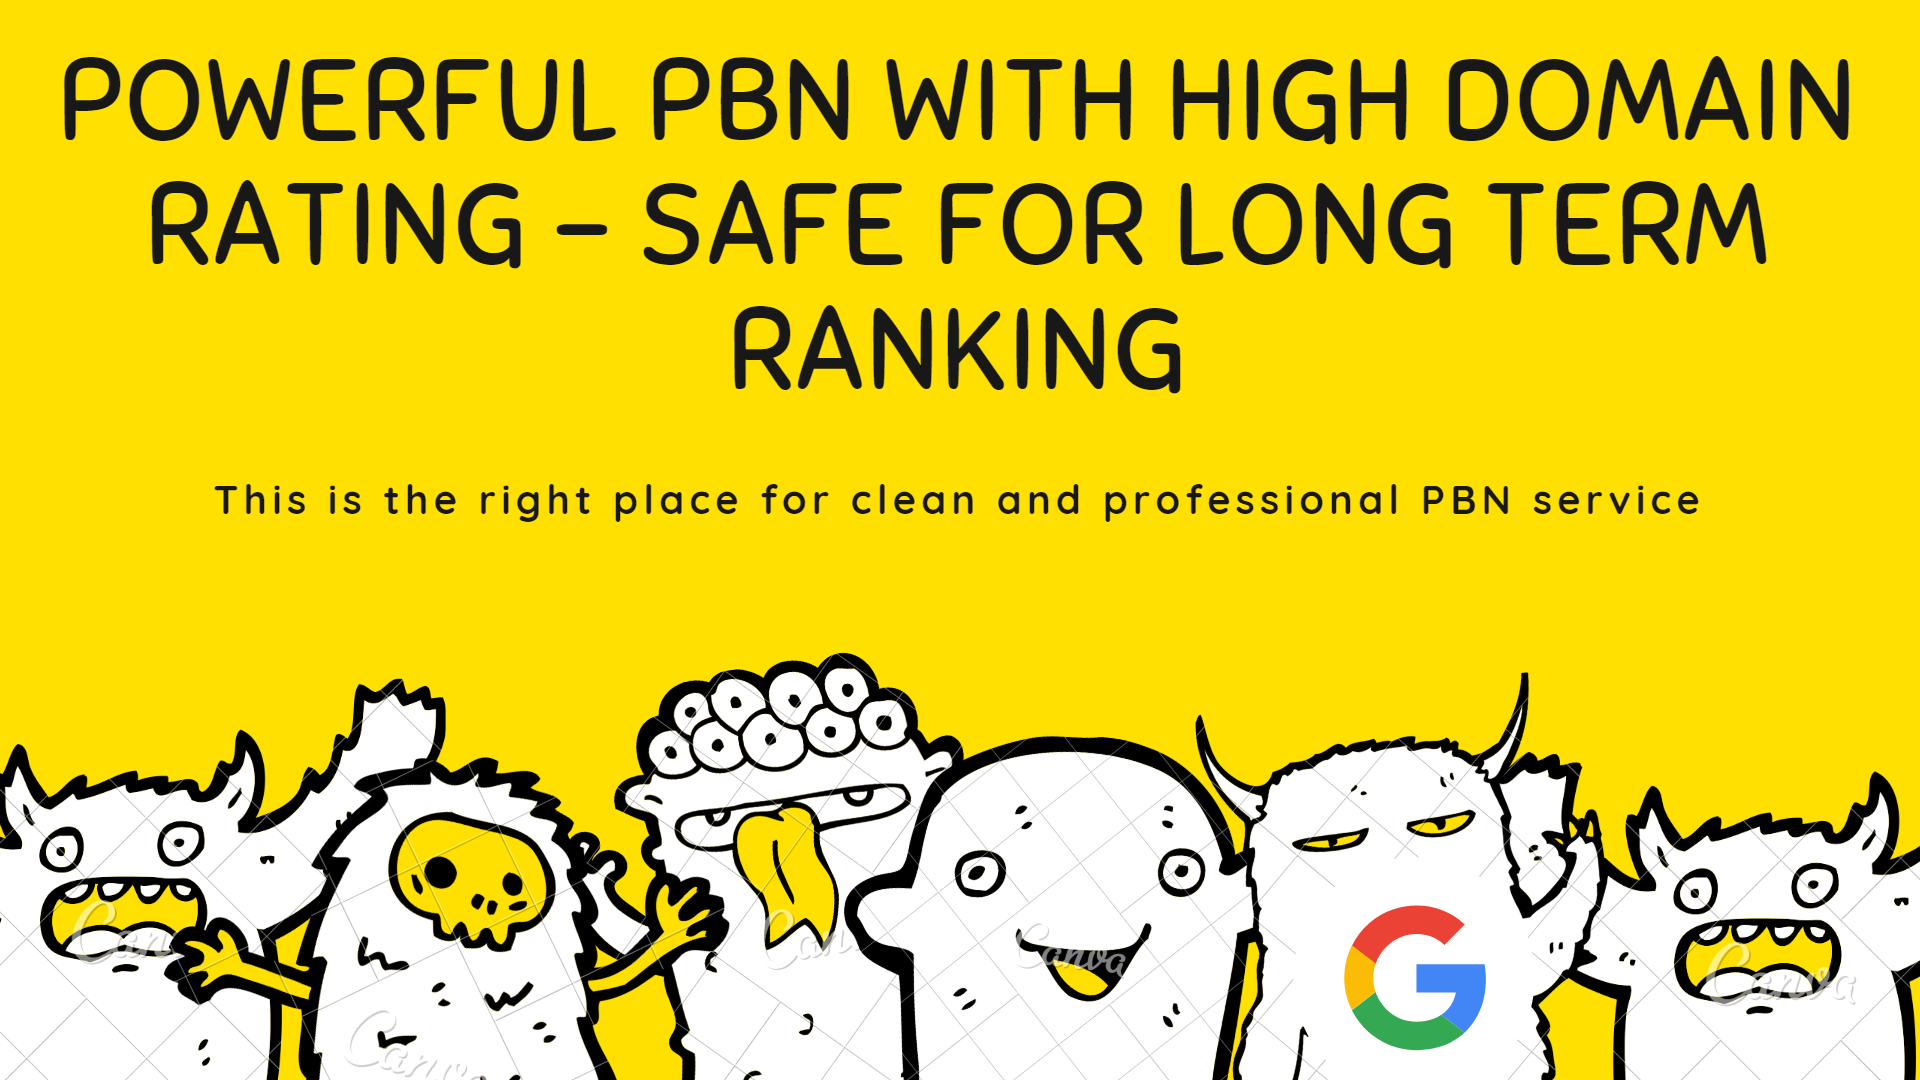 Powerful PBN with High Domain Rating - Safe for Long Term Ranking